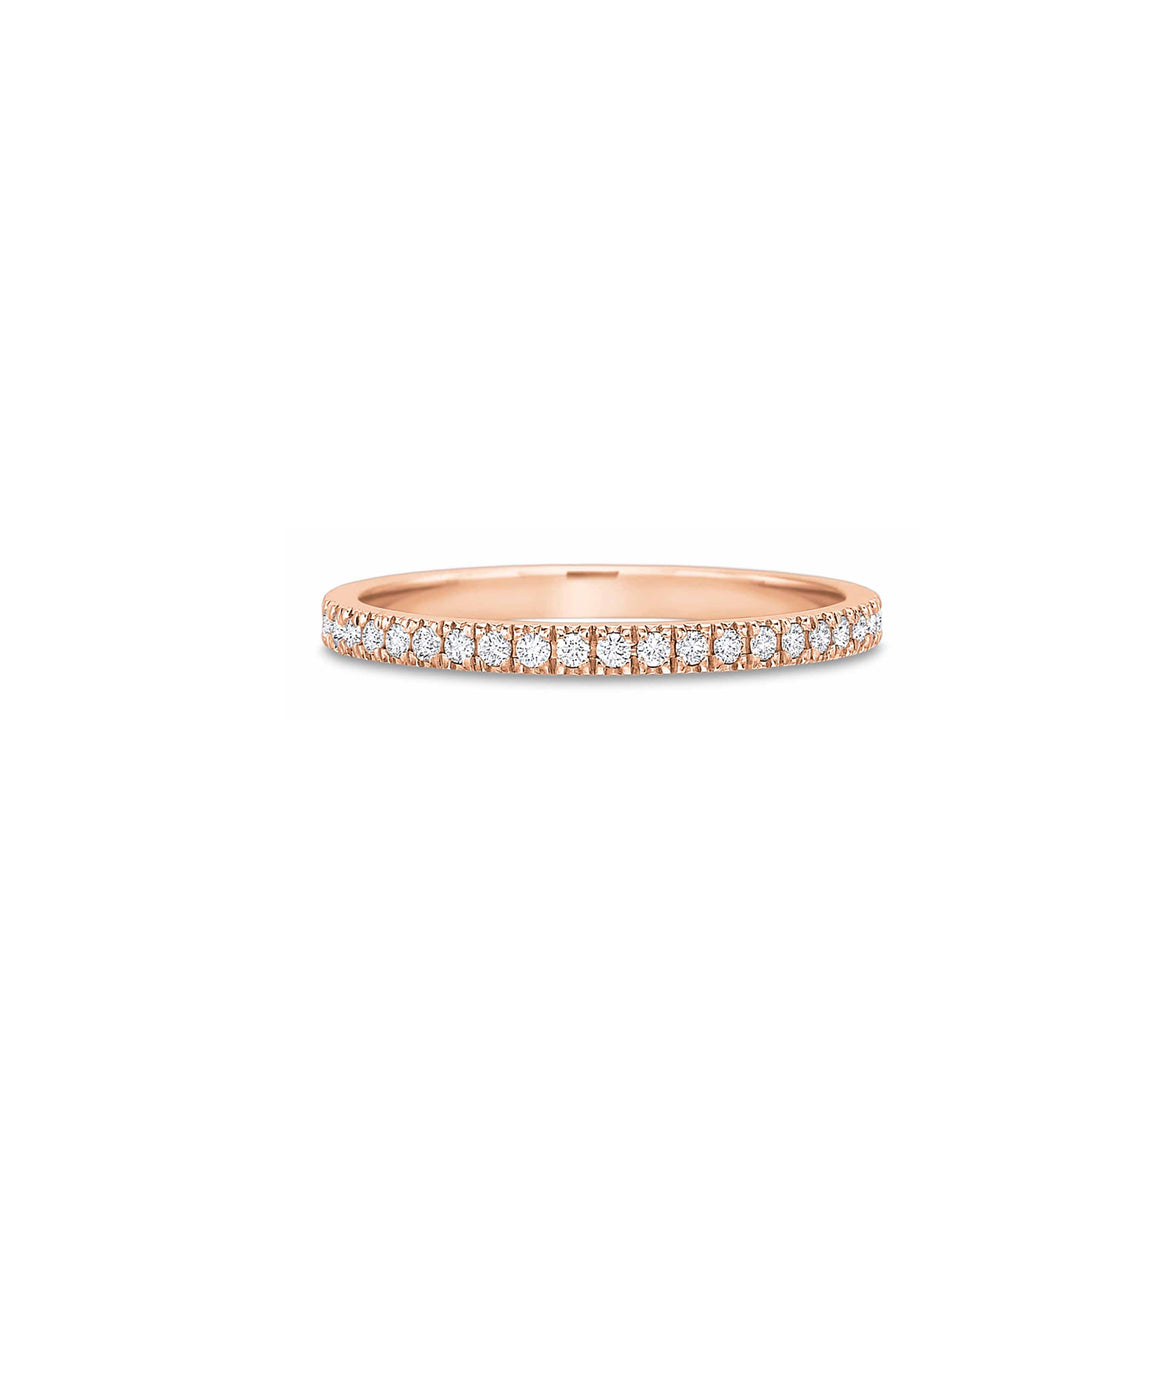 Small Rose Gold Diamond Eternity Band - Lesley Ann Jewels